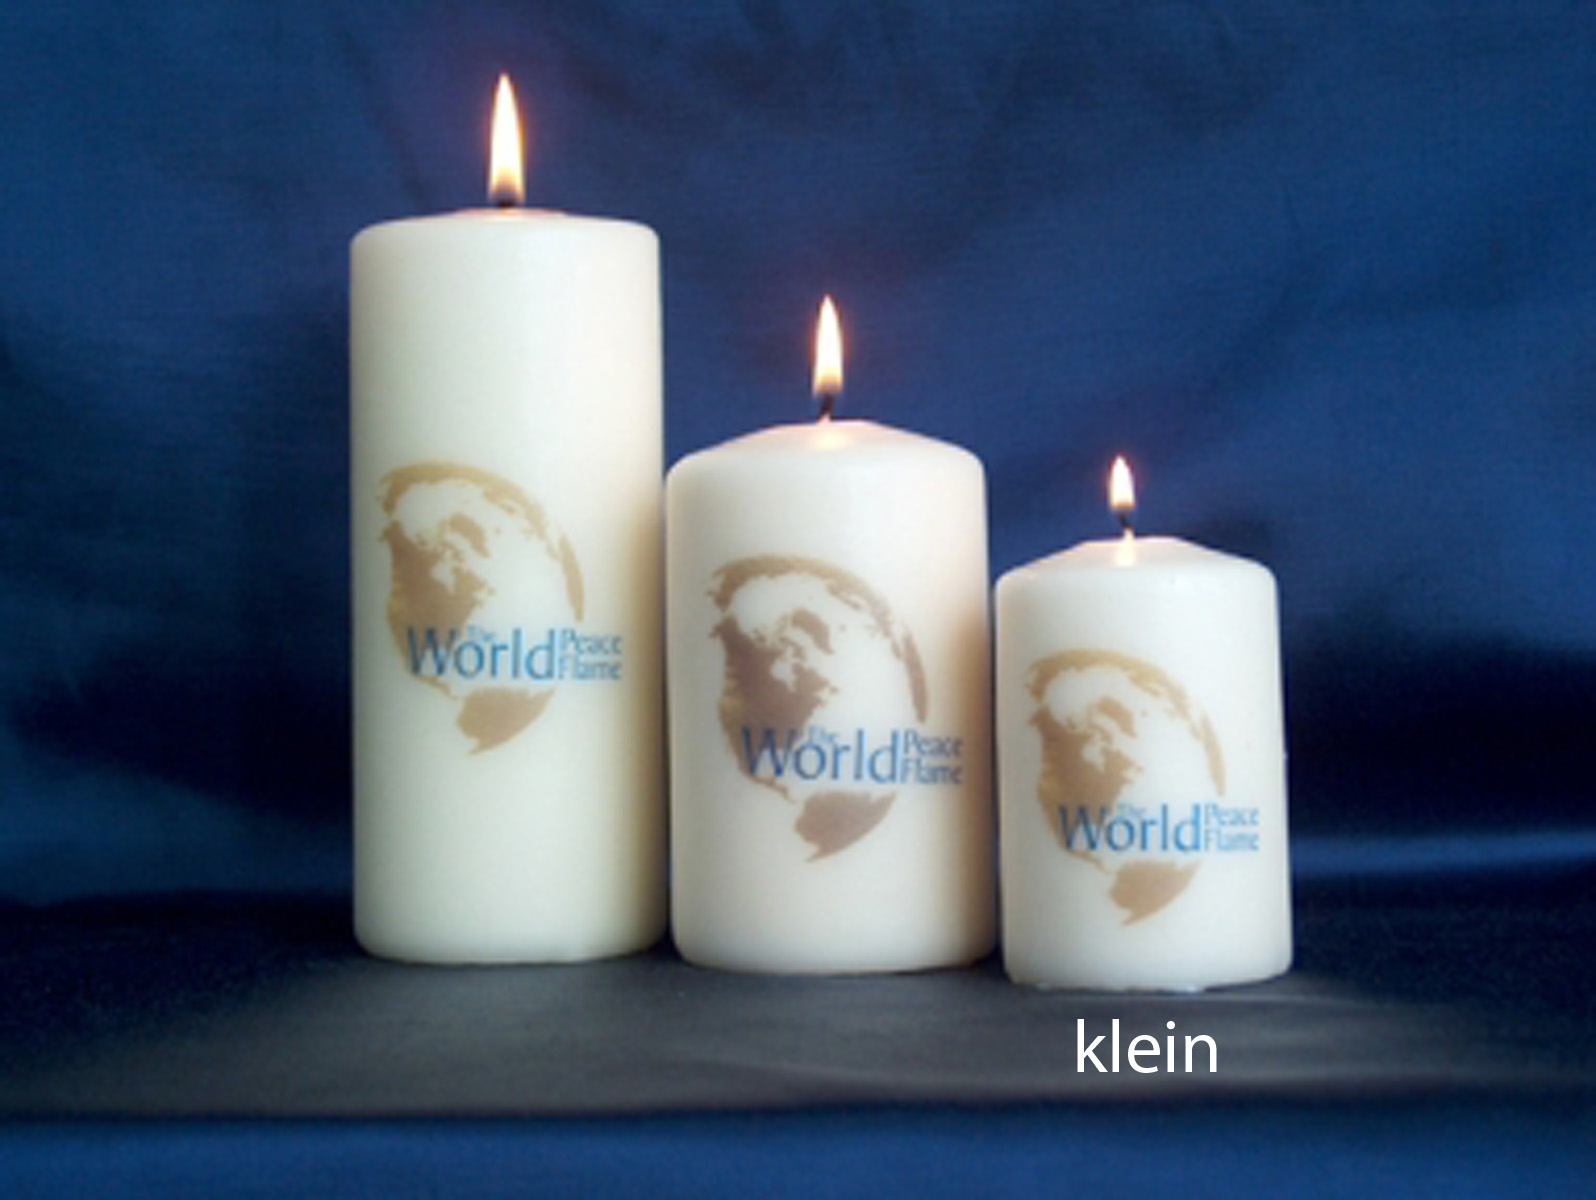 Kaars Met Foto.World Peace Flame Shop Kaarsen Wpf Kaars Klein